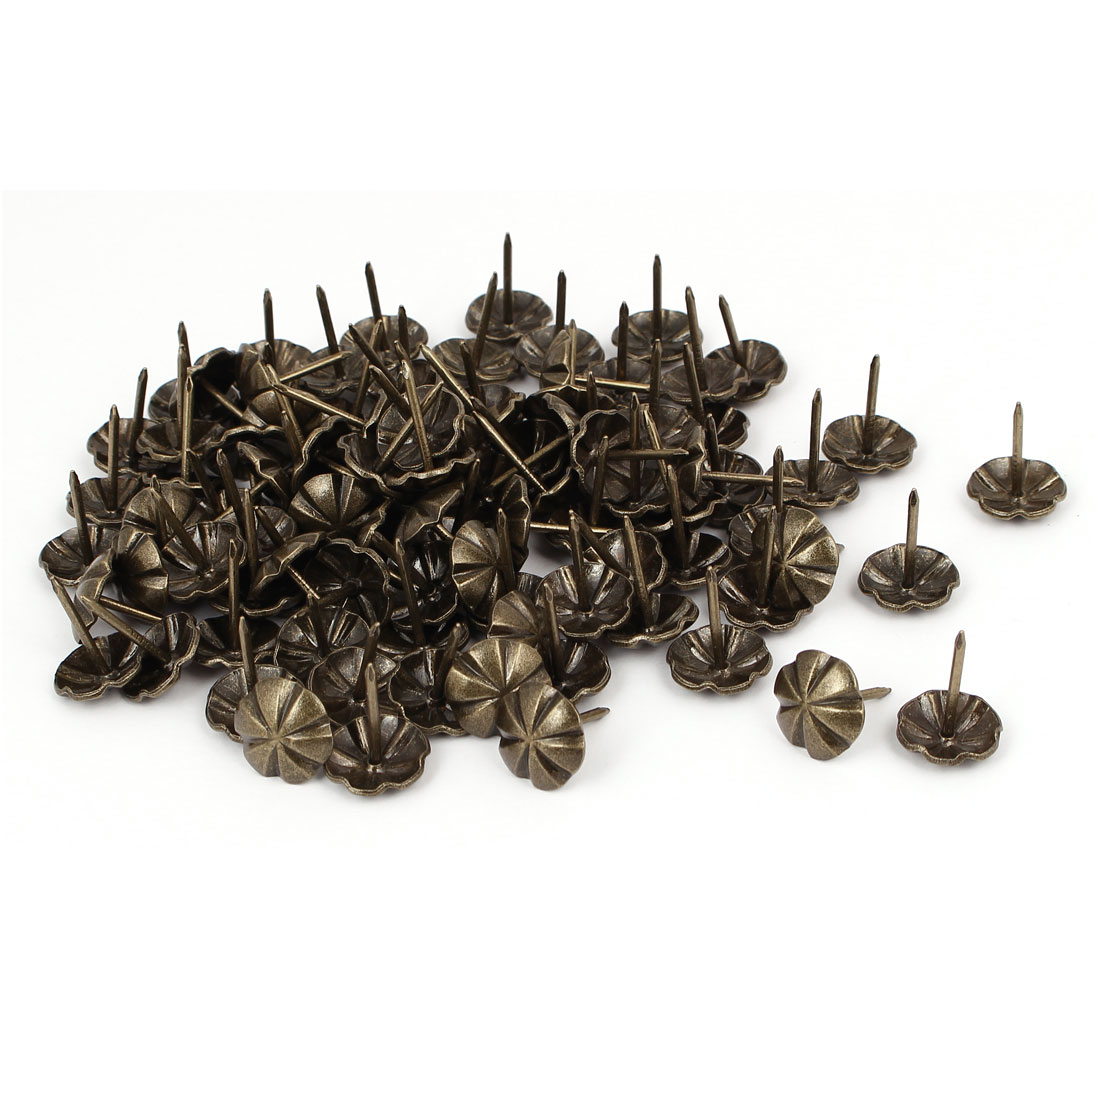 16mm Dia Metal Round Domed Head Upholstery Tack Nail Pushpin Bronze Tone 100pcs